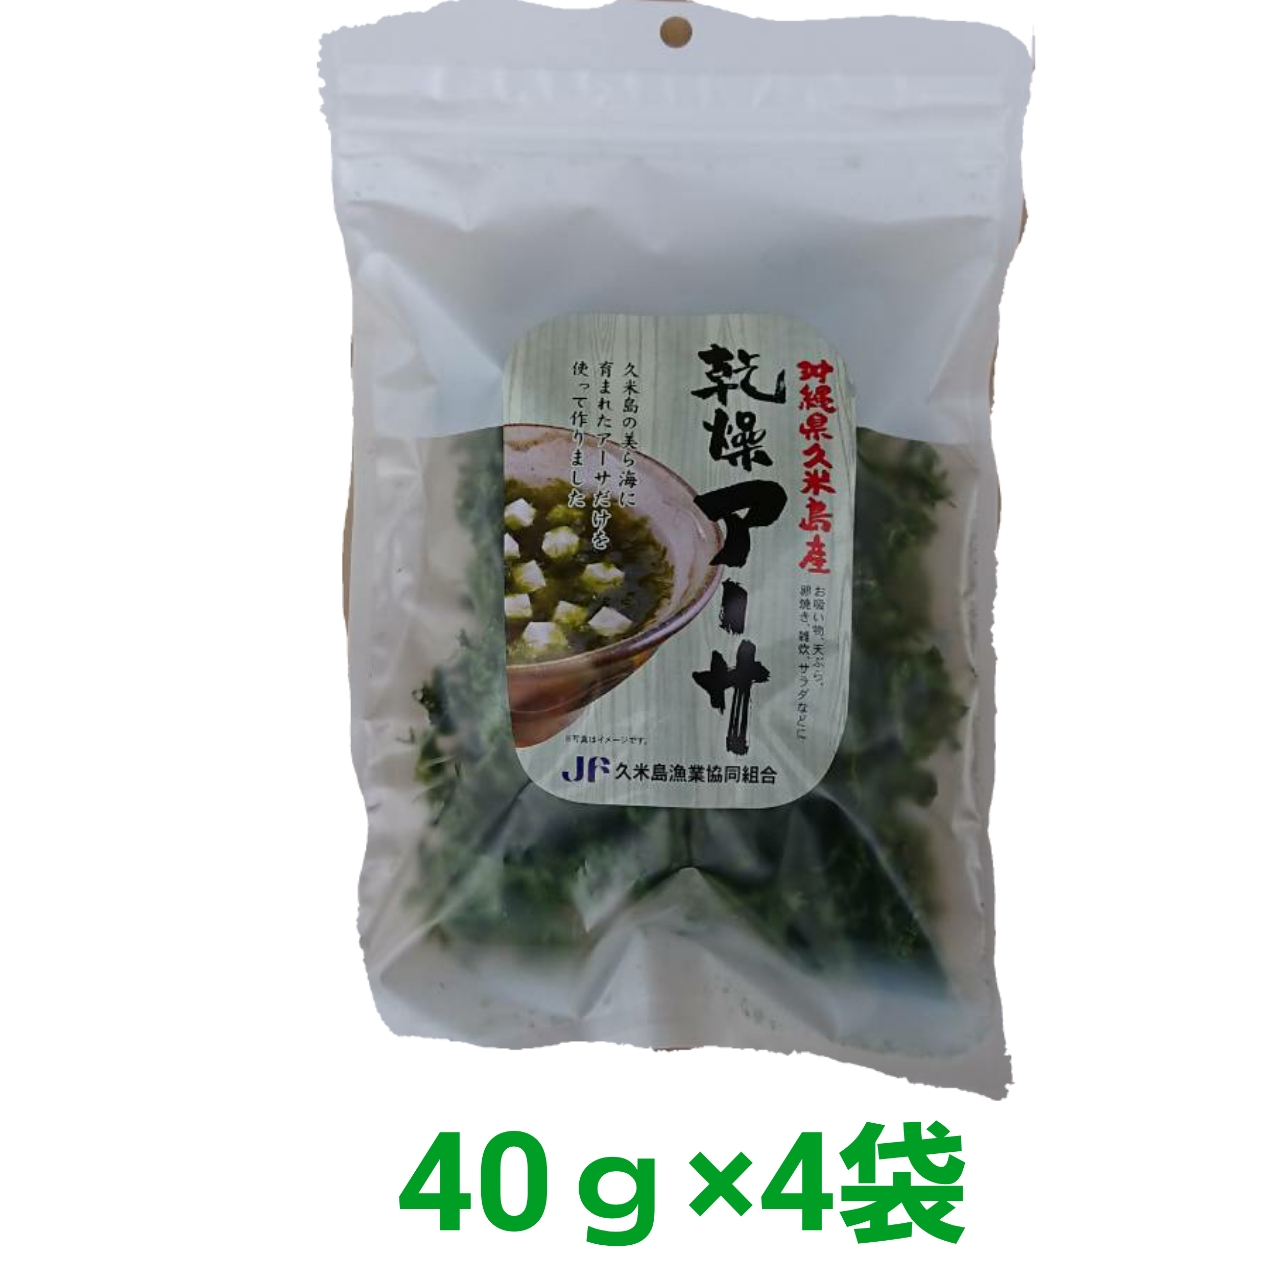 item_kansou_arsa_40g4pc